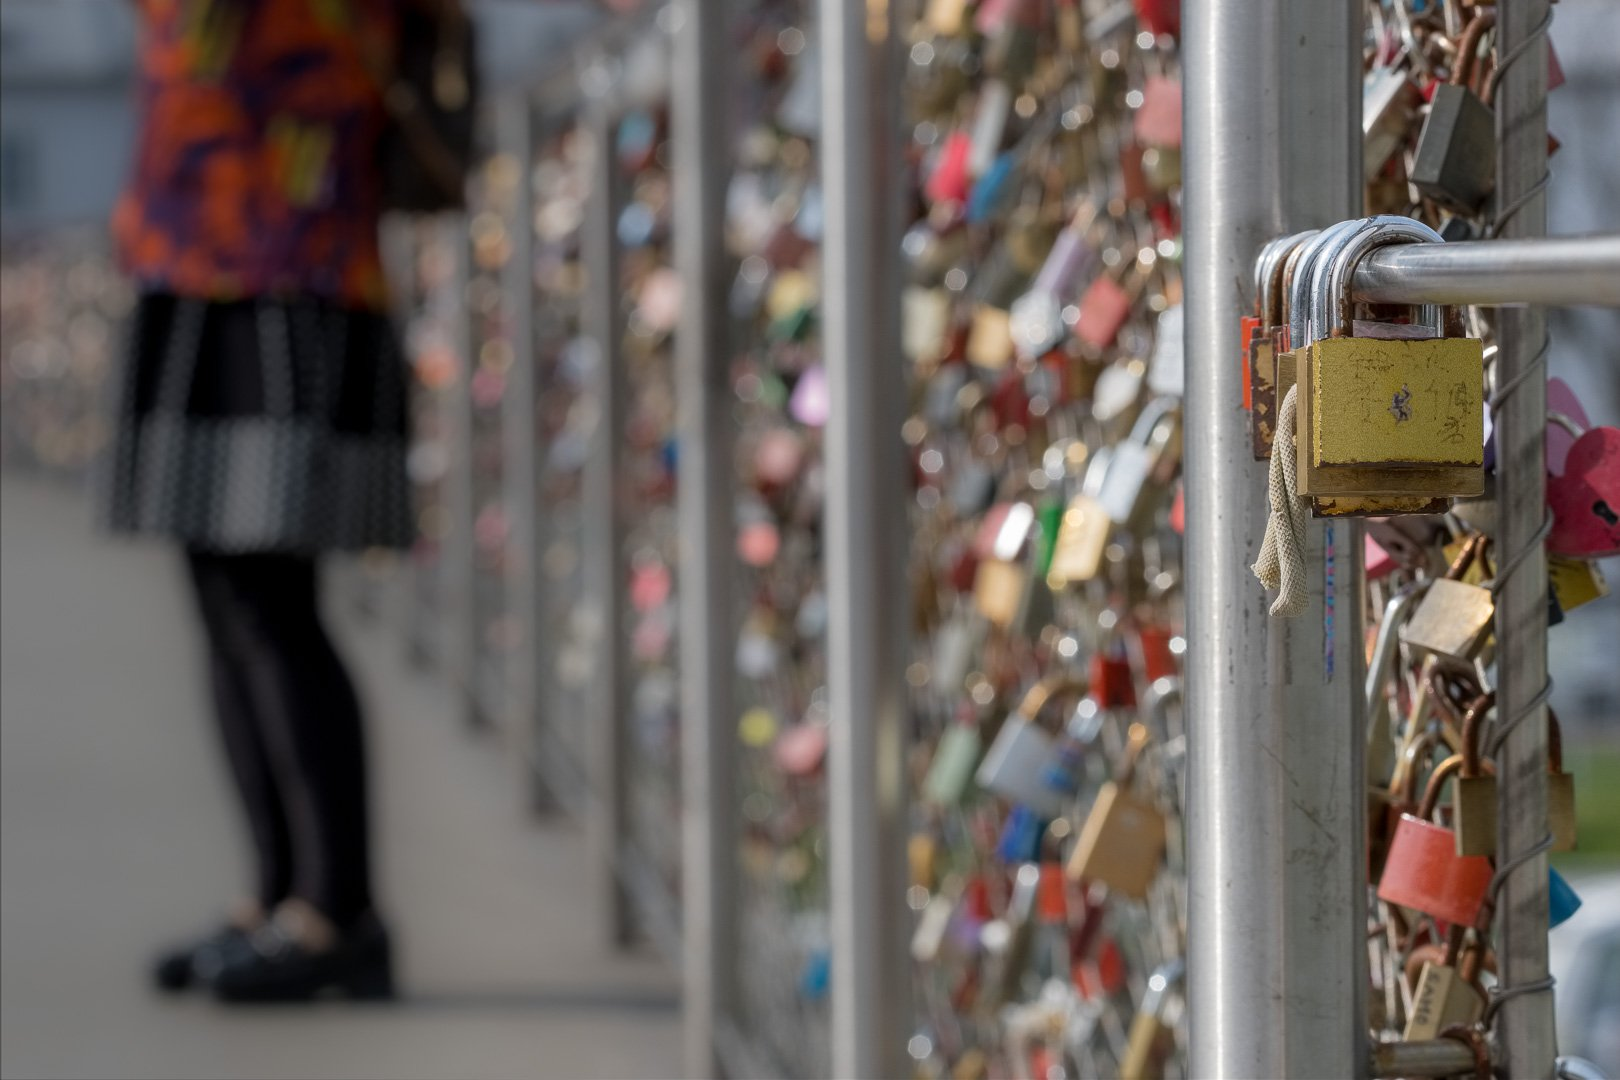 Love locks at makartsteg bridge